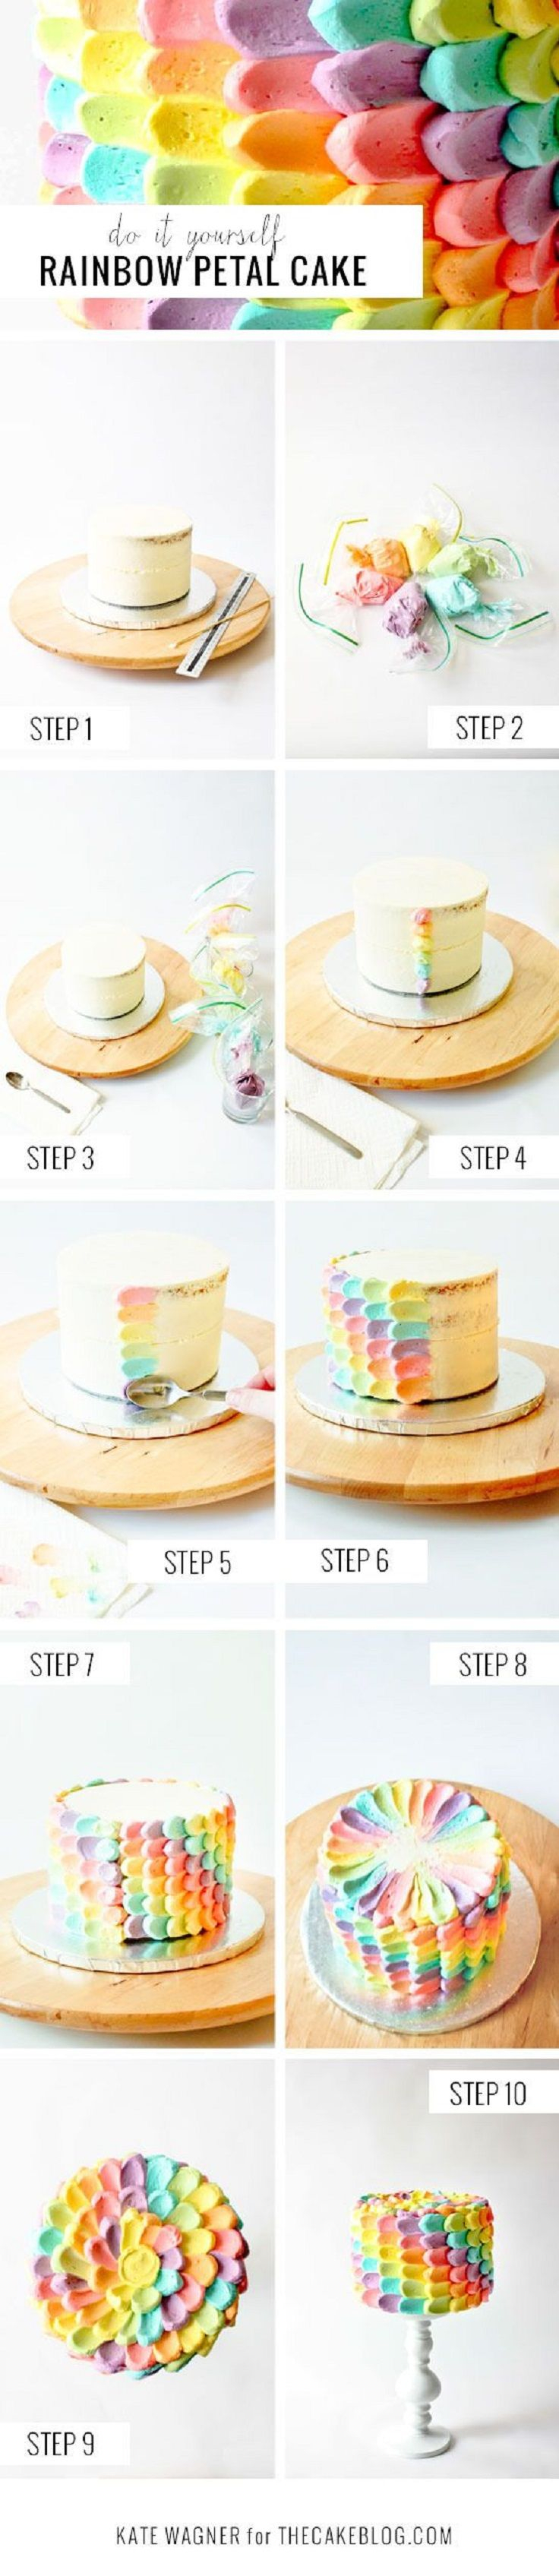 DIY Rainbow Petal Cake - 15 Spring-Inspired Cake Decorating Tips and Tutorials